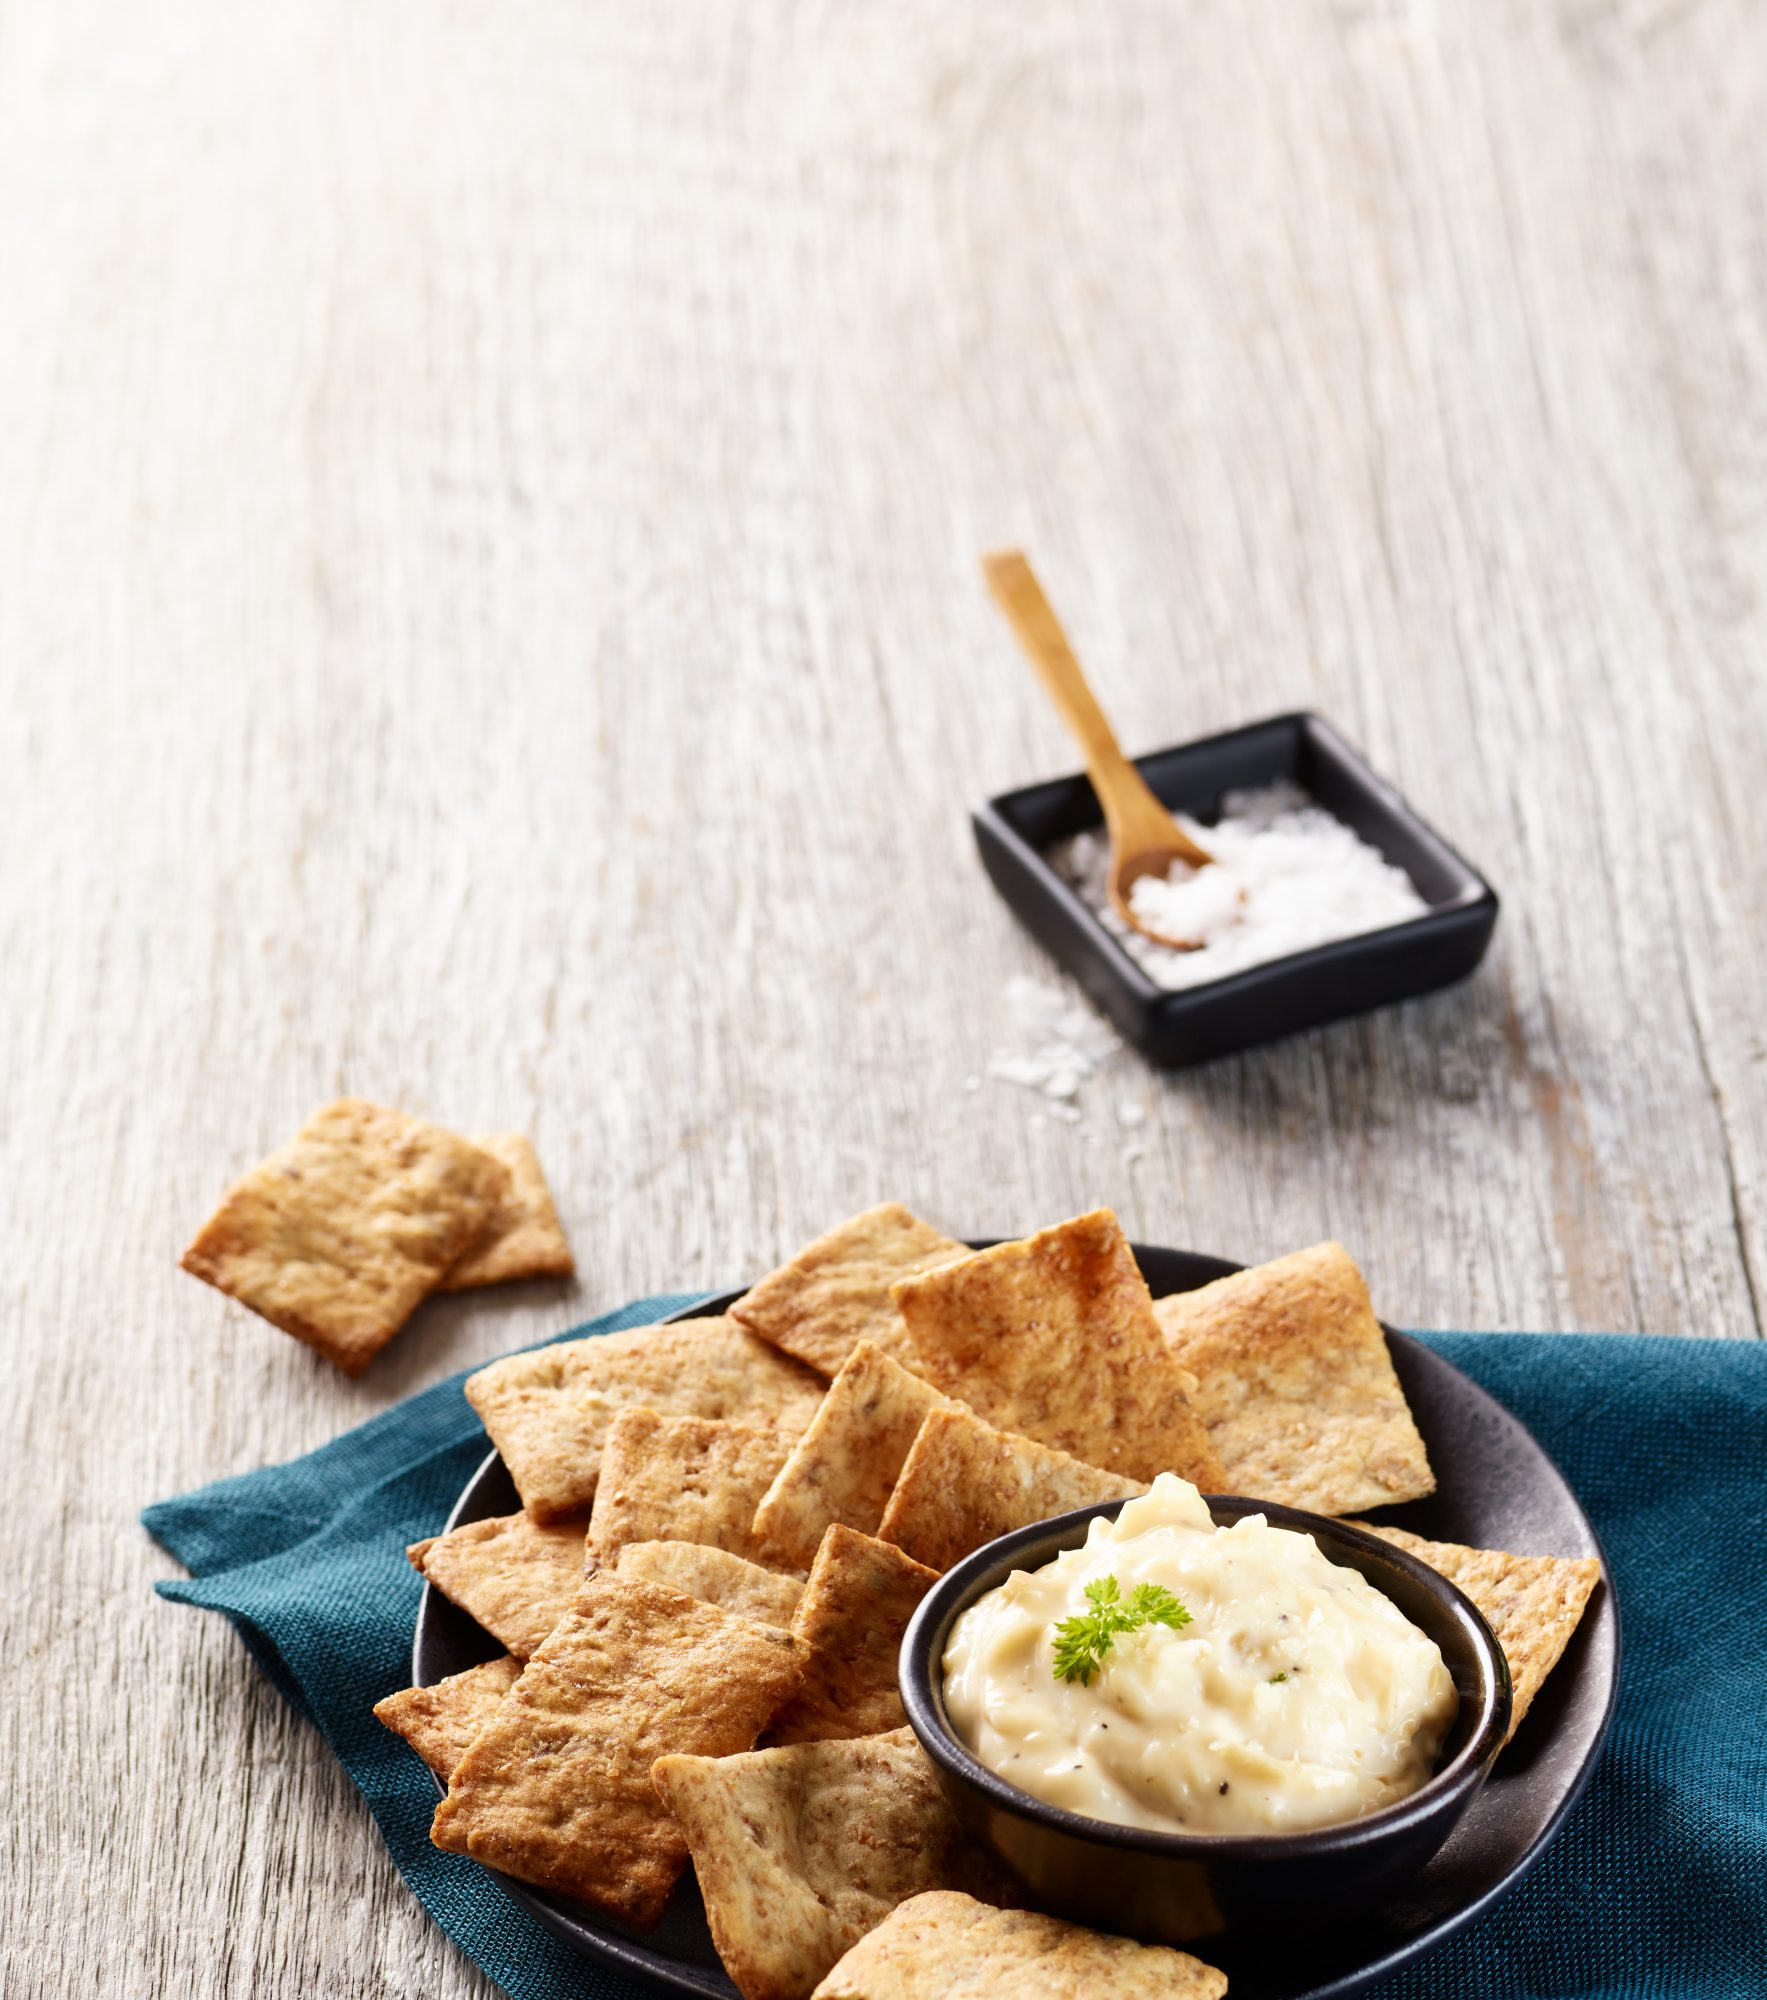 Prepackaged chips and dip